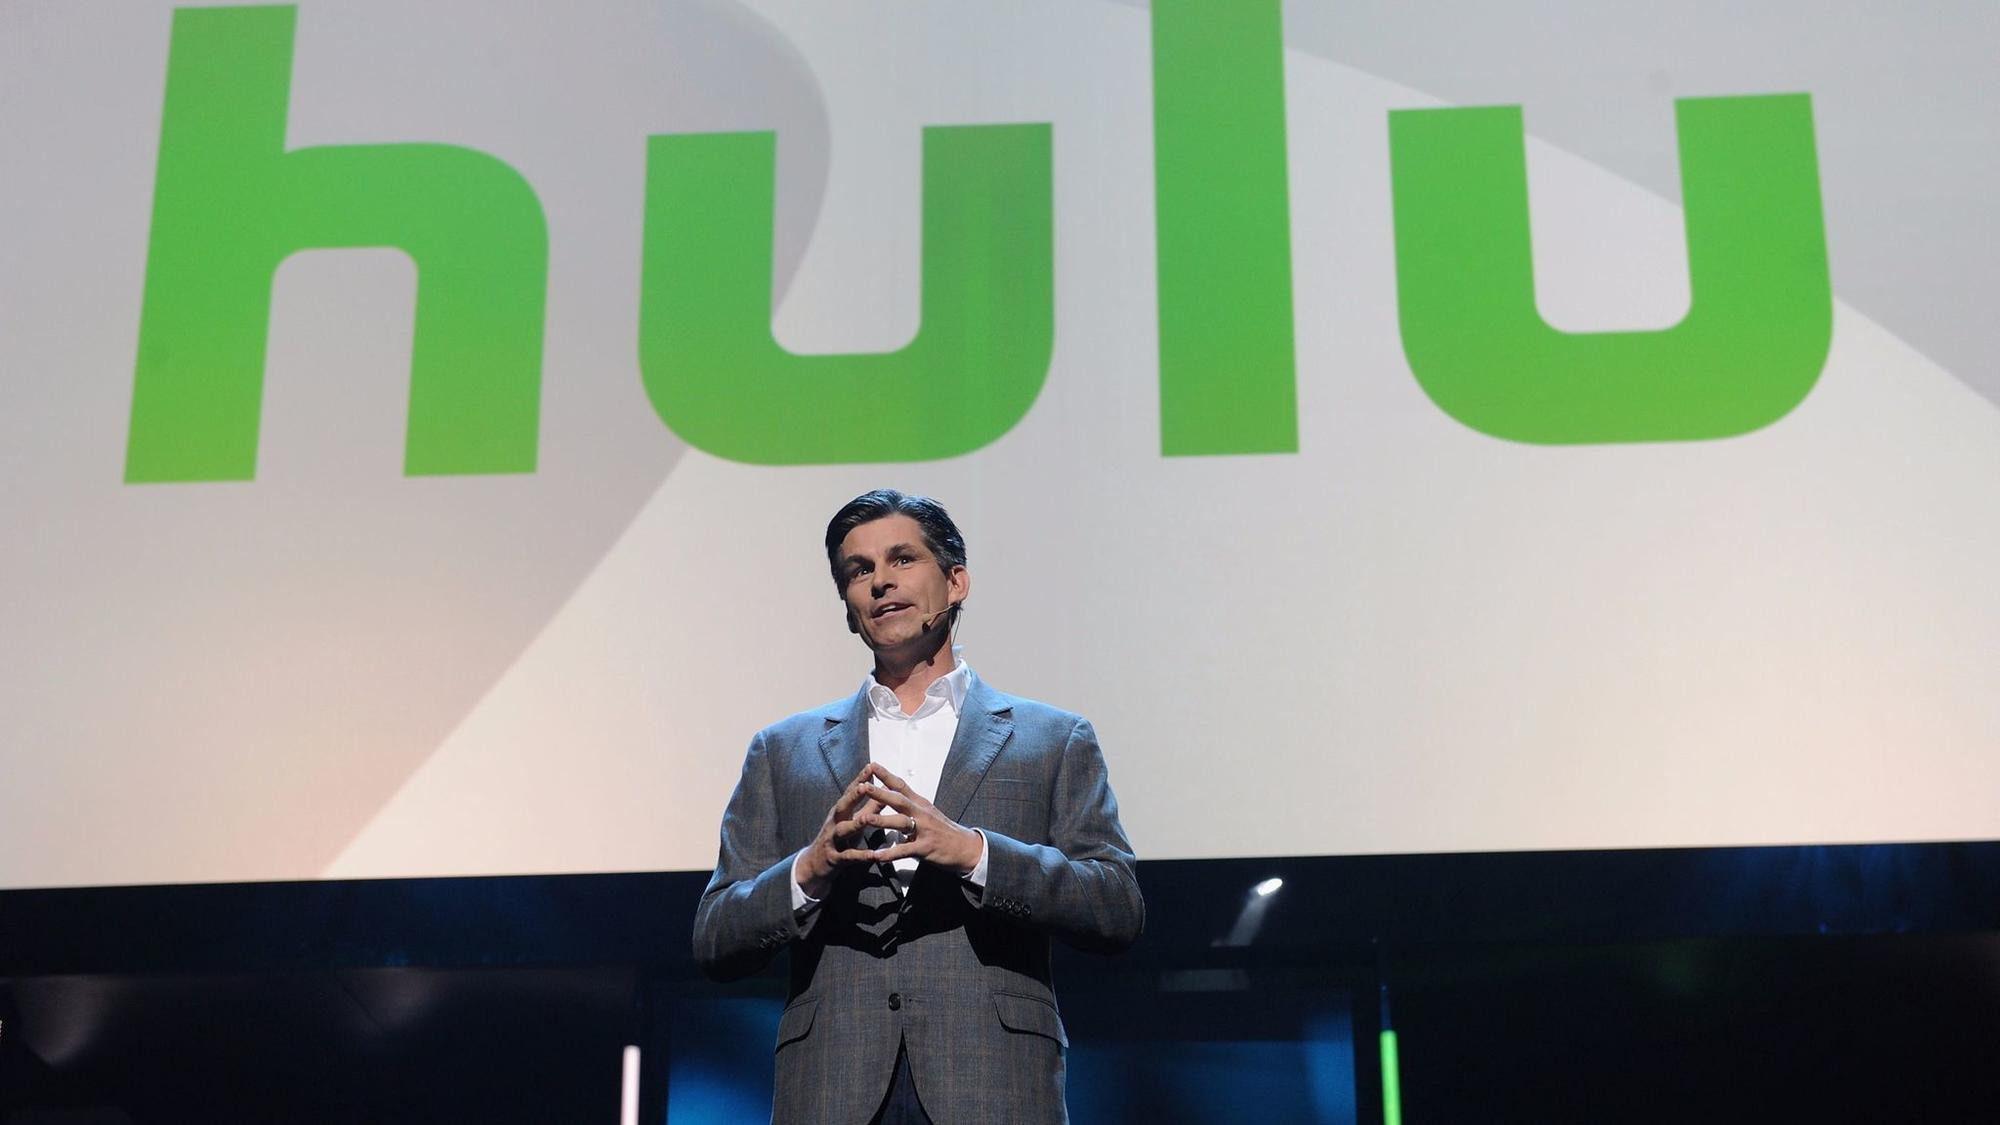 Randy Freer named CEO of Hulu as Mike Hopkins moves to Sony Pictures Entertainment